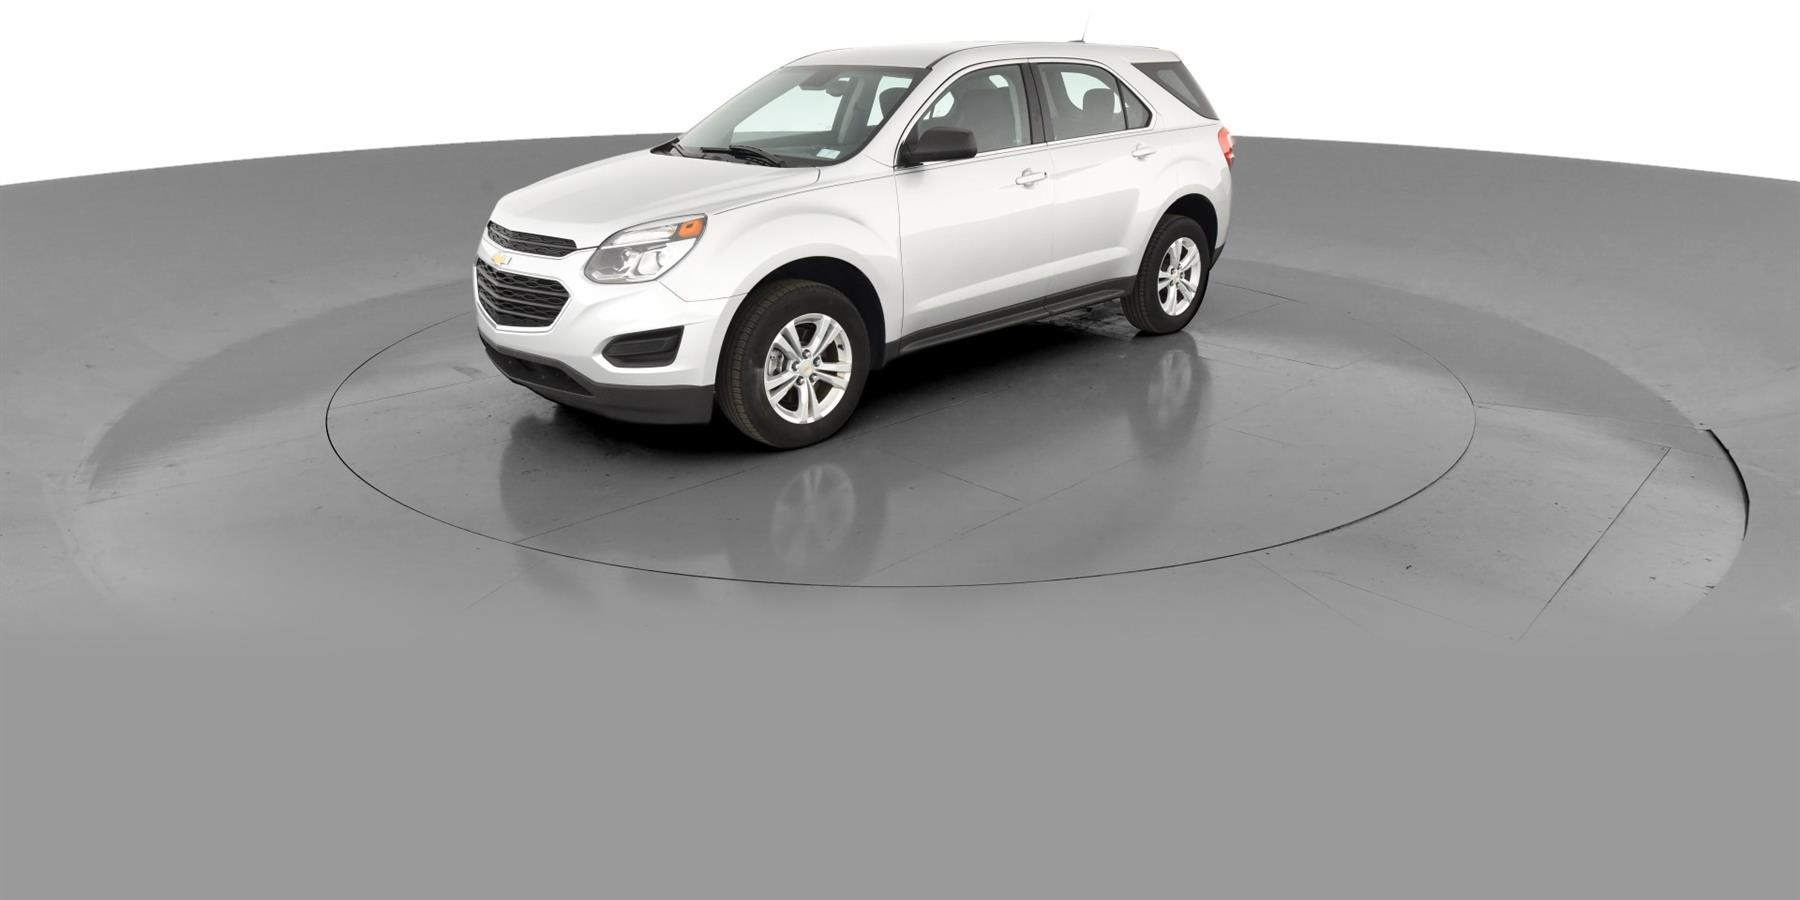 2017 Chevrolet Equinox LS Sport Utility 4D for Sale | Carvana®